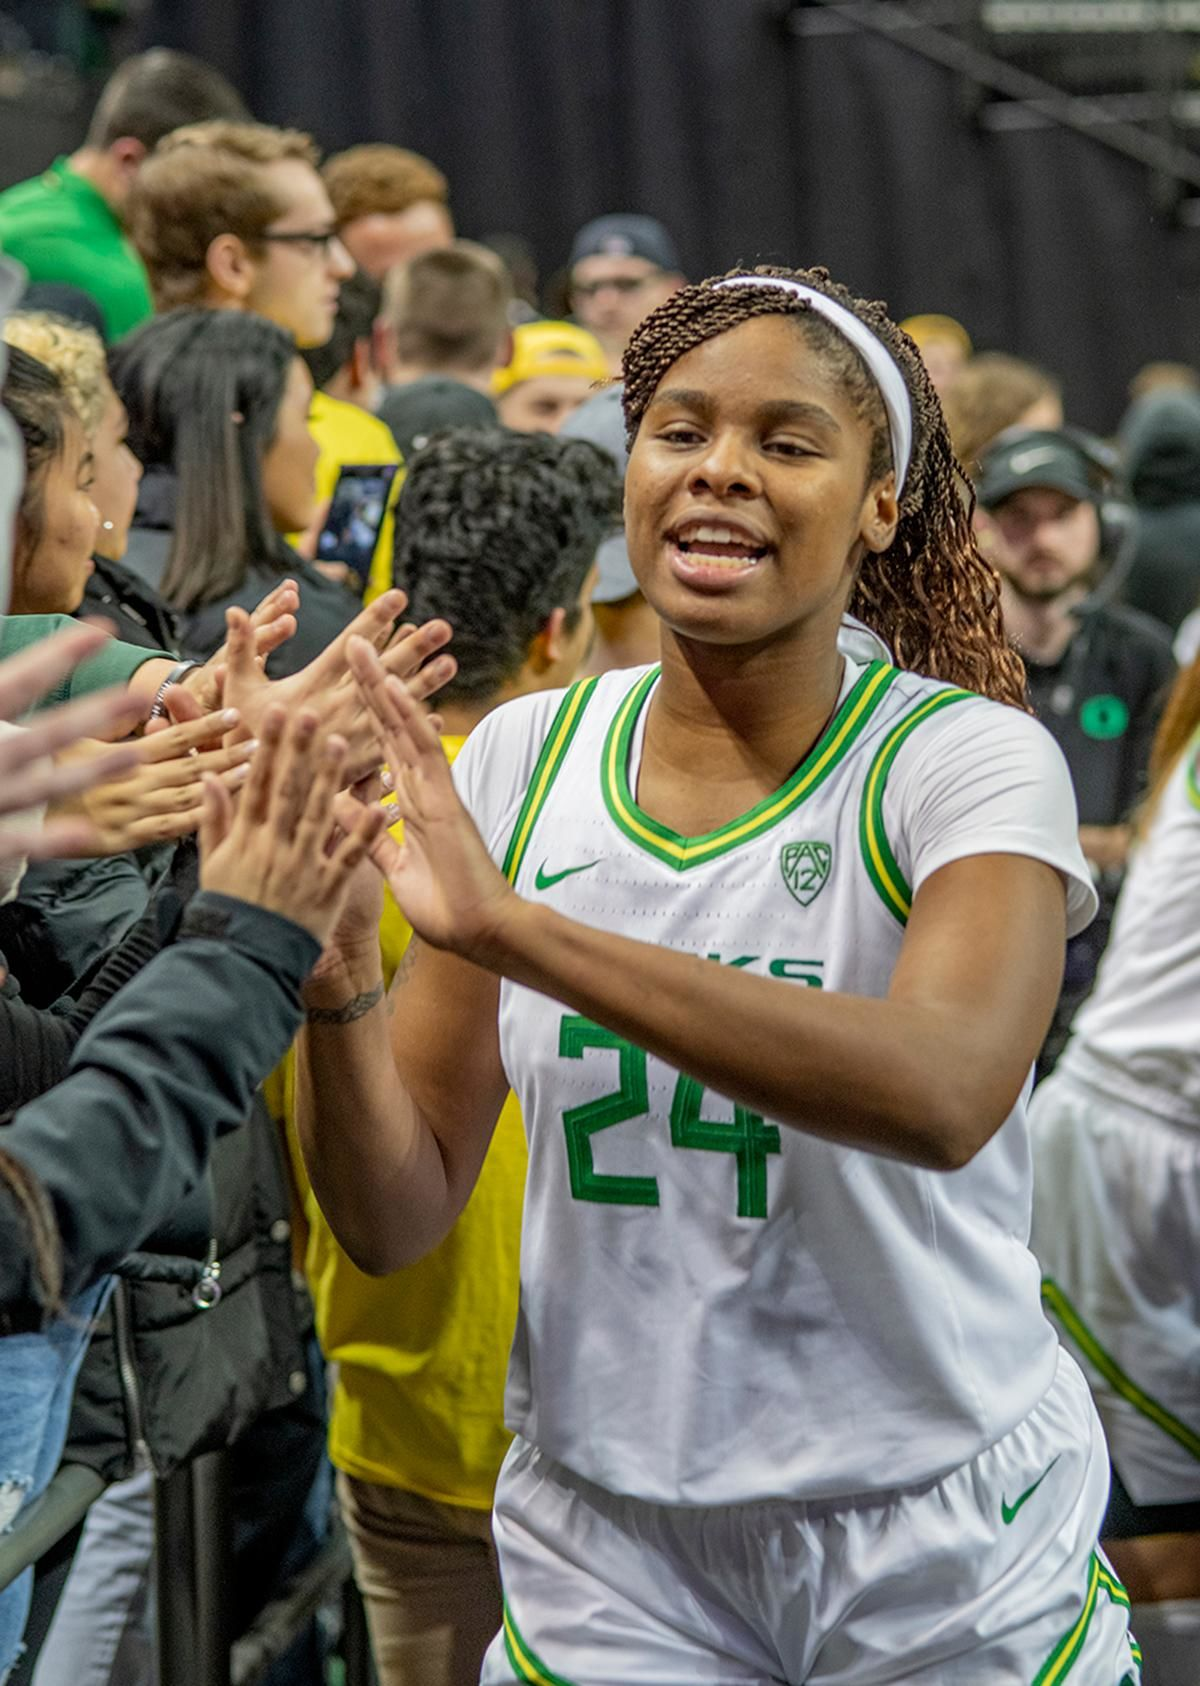 University of Oregon Ducks Ruthy Hebard, #24, celebrates with her fans after defeating the Stanford Cardinal. The #6 University of Oregon Ducks women's basketball team defeated #3 Stanford Cardinal 87-55 in front of a sold out crowd of 12, 218 fans in Matthew Knight Arena. Sabrina Ionescu broke the all-time Oregon scoring record of 2,253 and ended the game with 37 points, 11 rebounds, another double-double. Satou Sabally added 18 points and 11 rebounds, also a double-double. Ruthy Hebard put up 11 points with 5 rebounds, and Minyon Moore added 10 points 3 rebounds. The Ducks next face off against Cal on Sunday, January 19, at 2 pm in Matthew Knight Arena. Photo by Dan Morrison